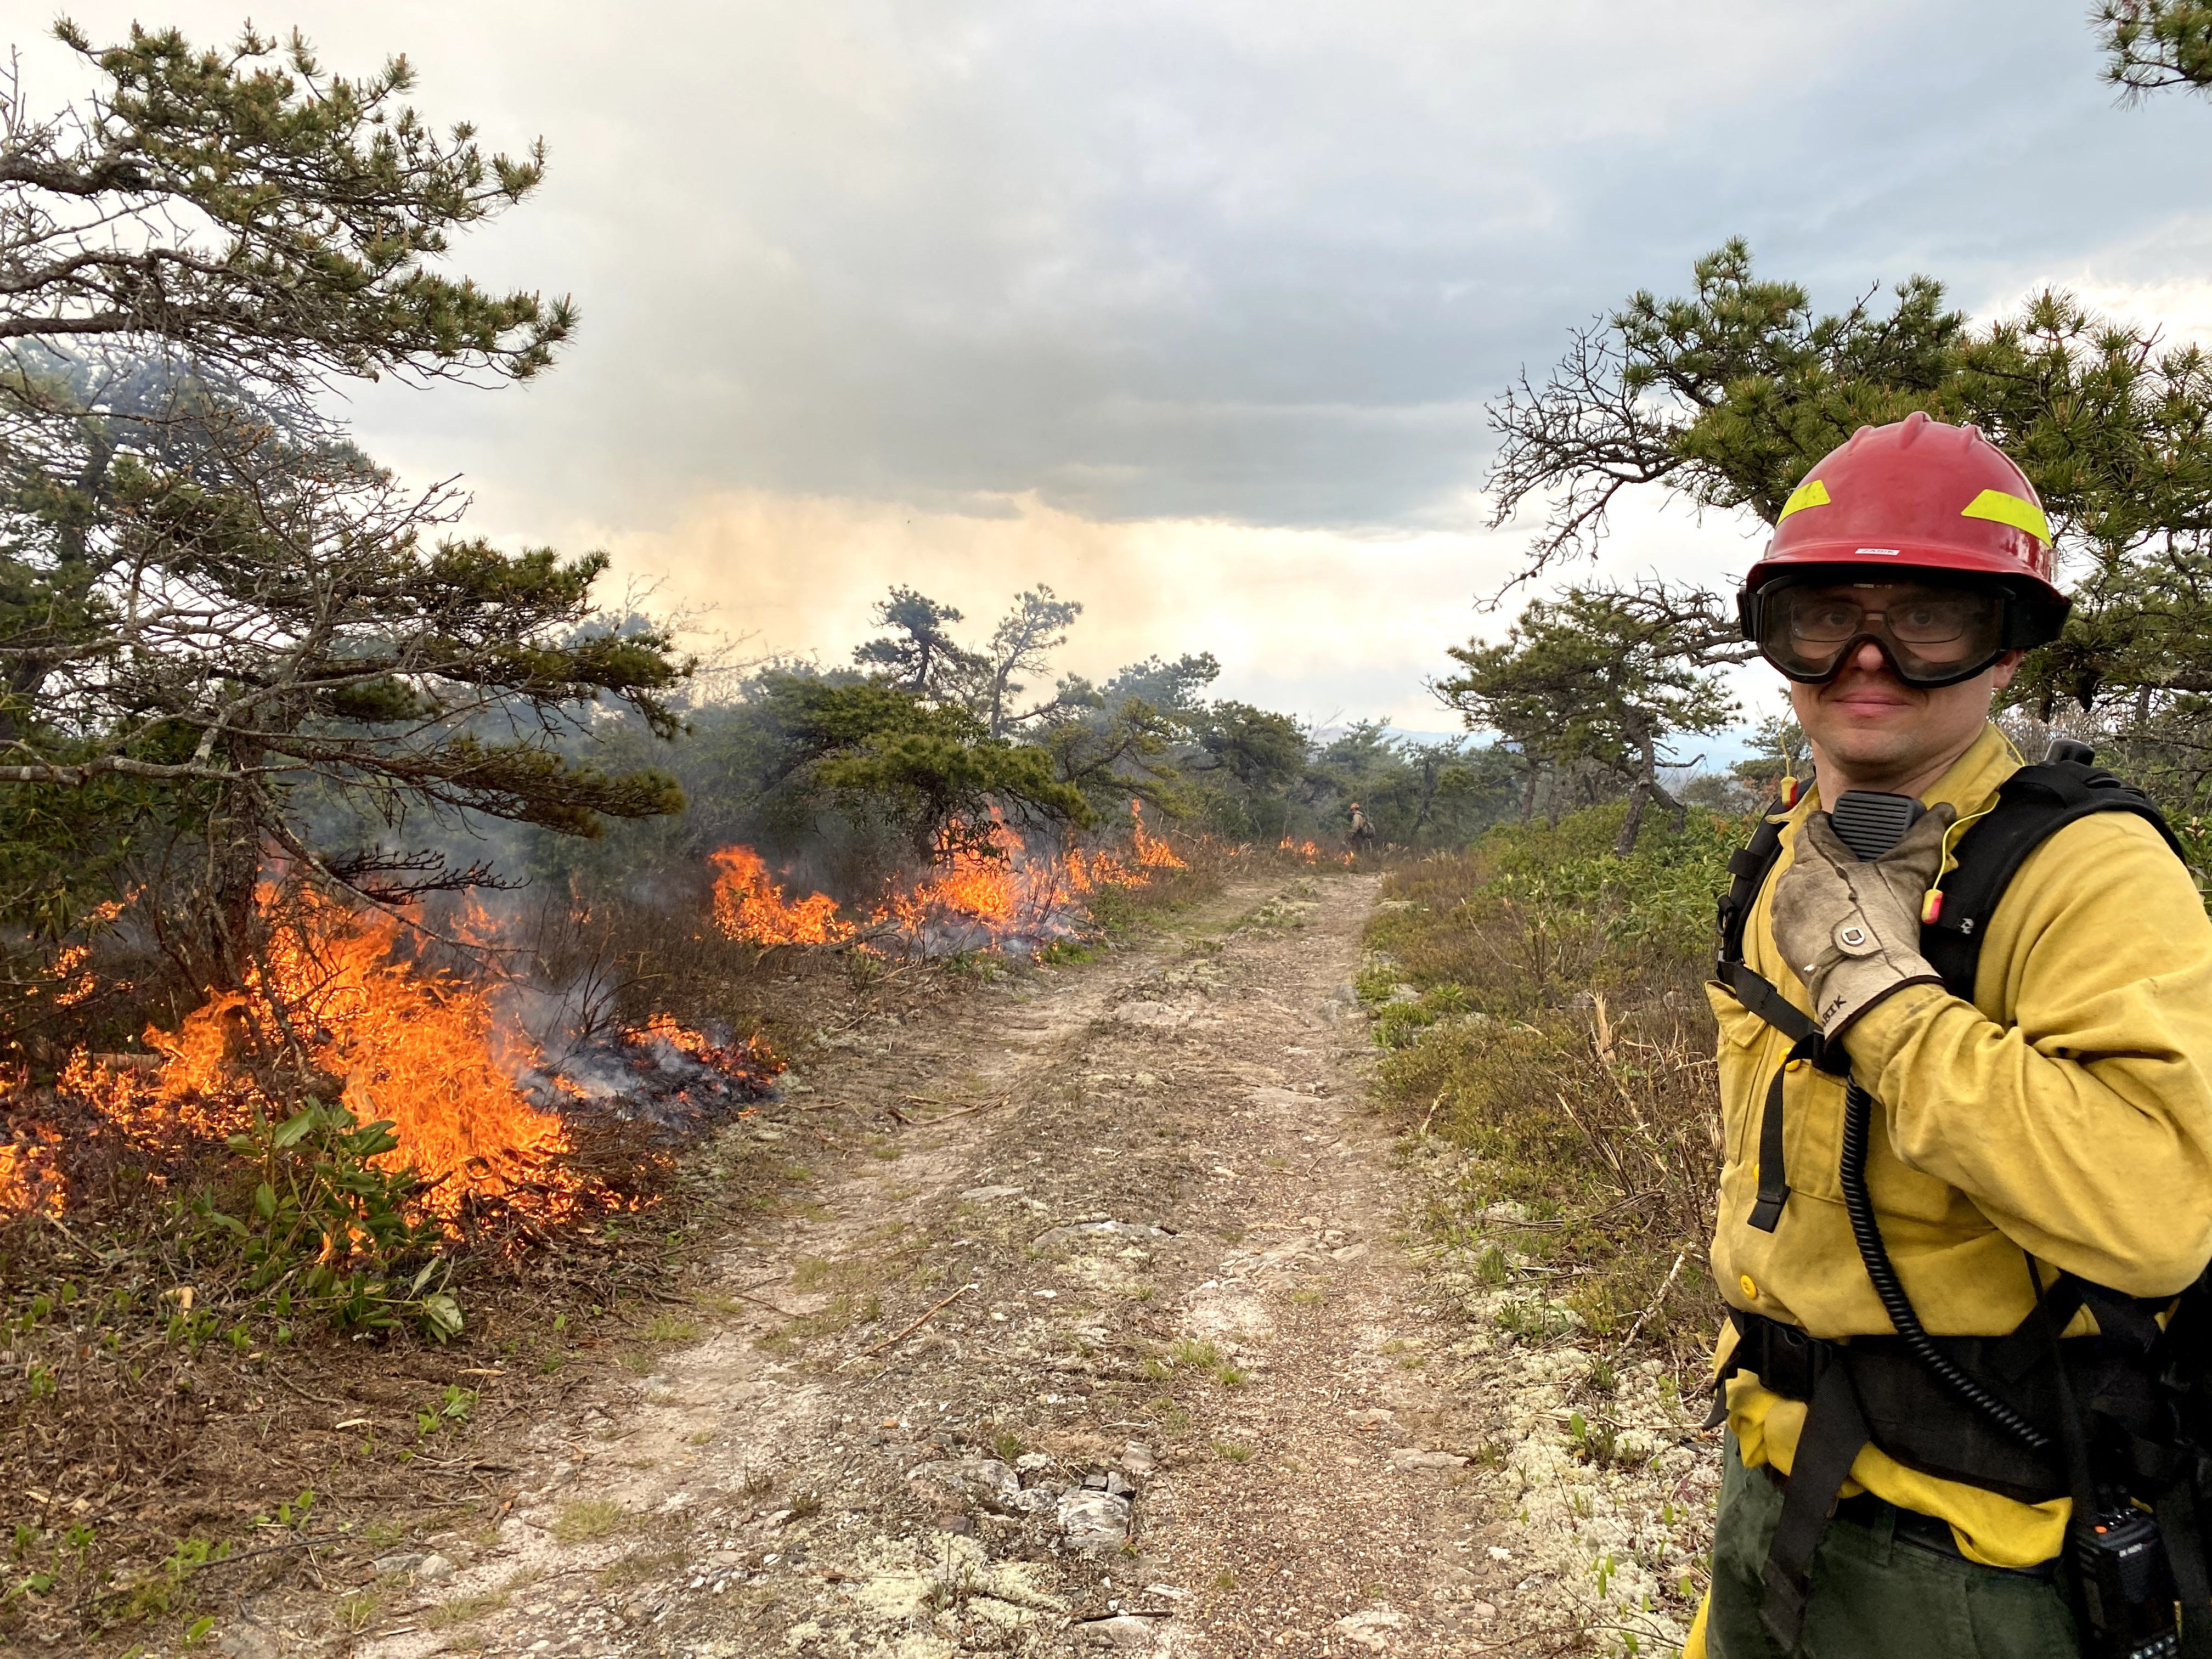 A man wearing goggles and yellow fire gear stands at the edge of a wide dirt track. A fire burns along the other side of the track consuming the green vegetation during a controlled burn.